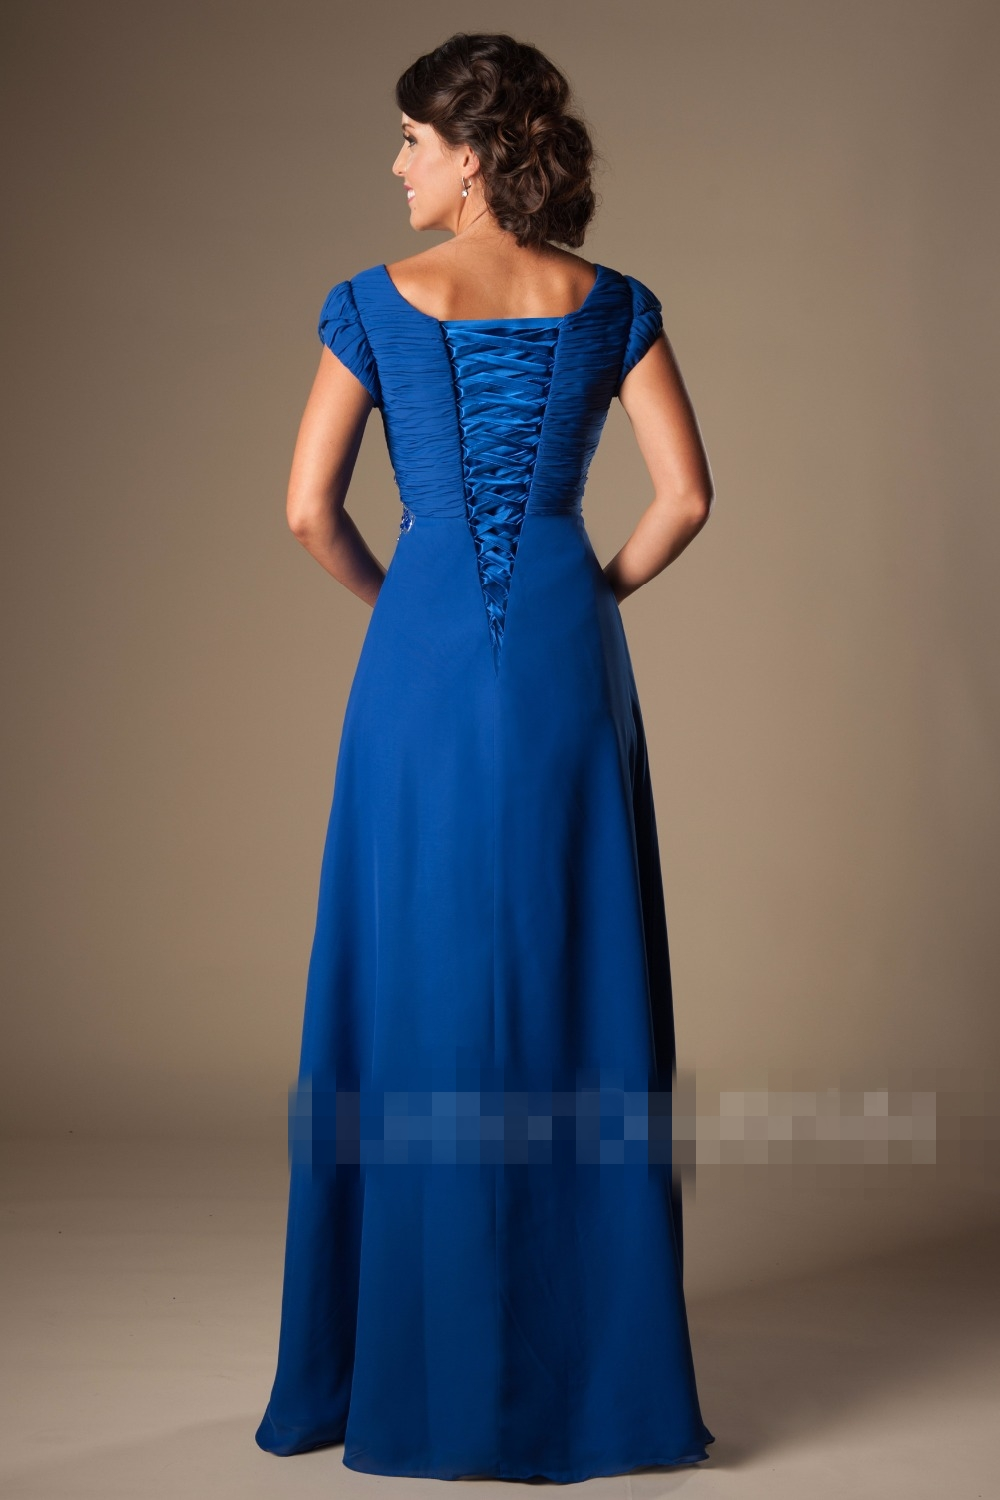 Royal blue long modest bridesmaid dresses with cap sleeves beaded royal blue long modest bridesmaid dresses with cap sleeves beaded crystals ruched chiffon coral beach bridesmaid gowns 2017 in bridesmaid dresses from ombrellifo Image collections